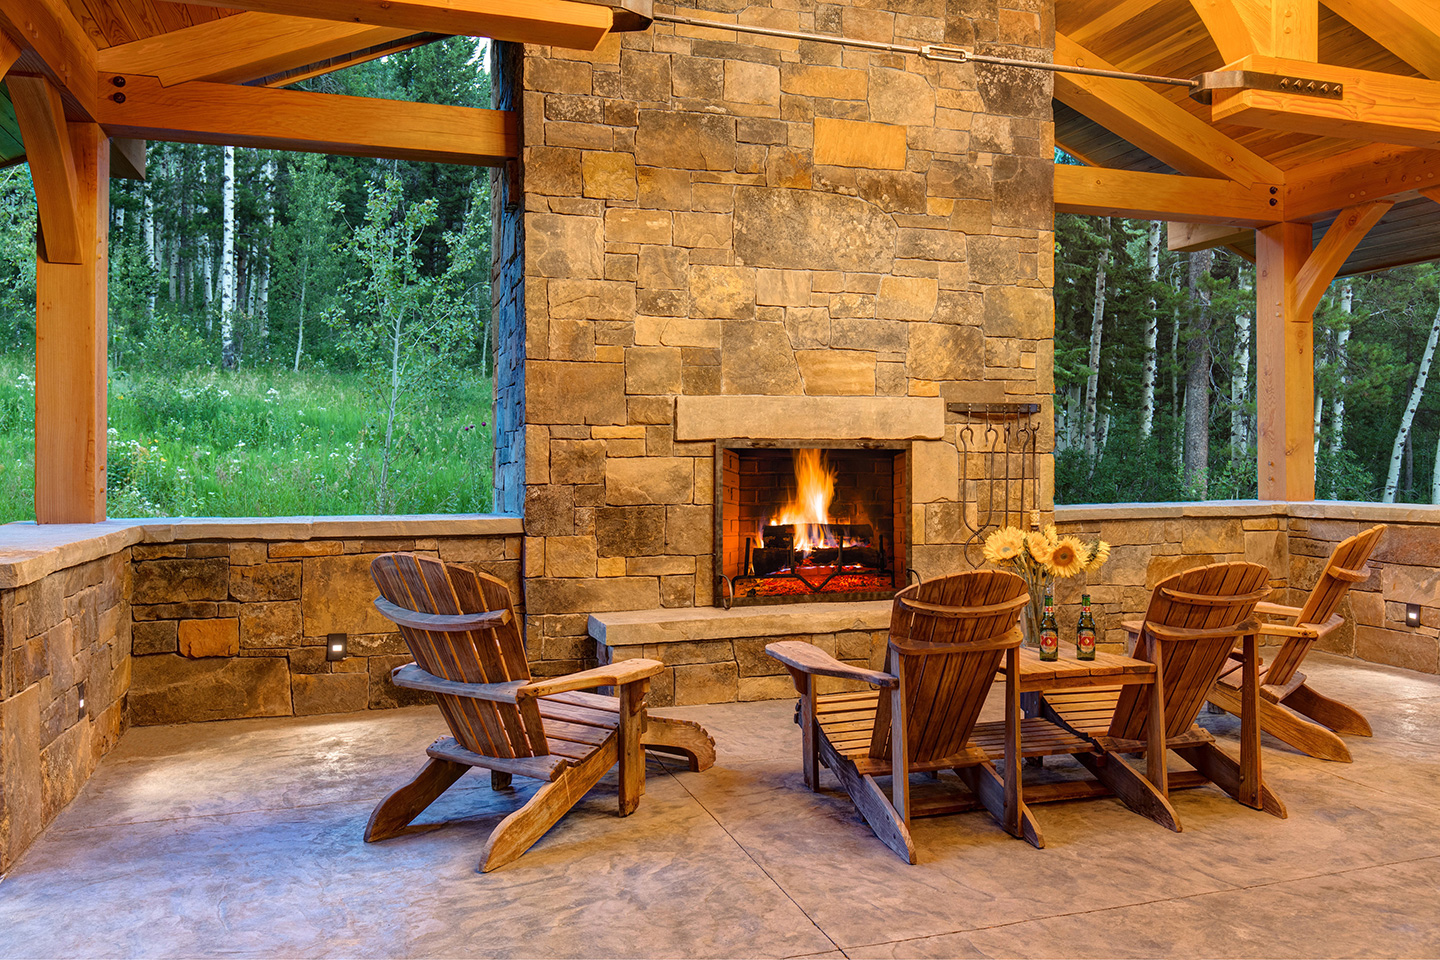 Outdoors fireplace with Adirondack chairs